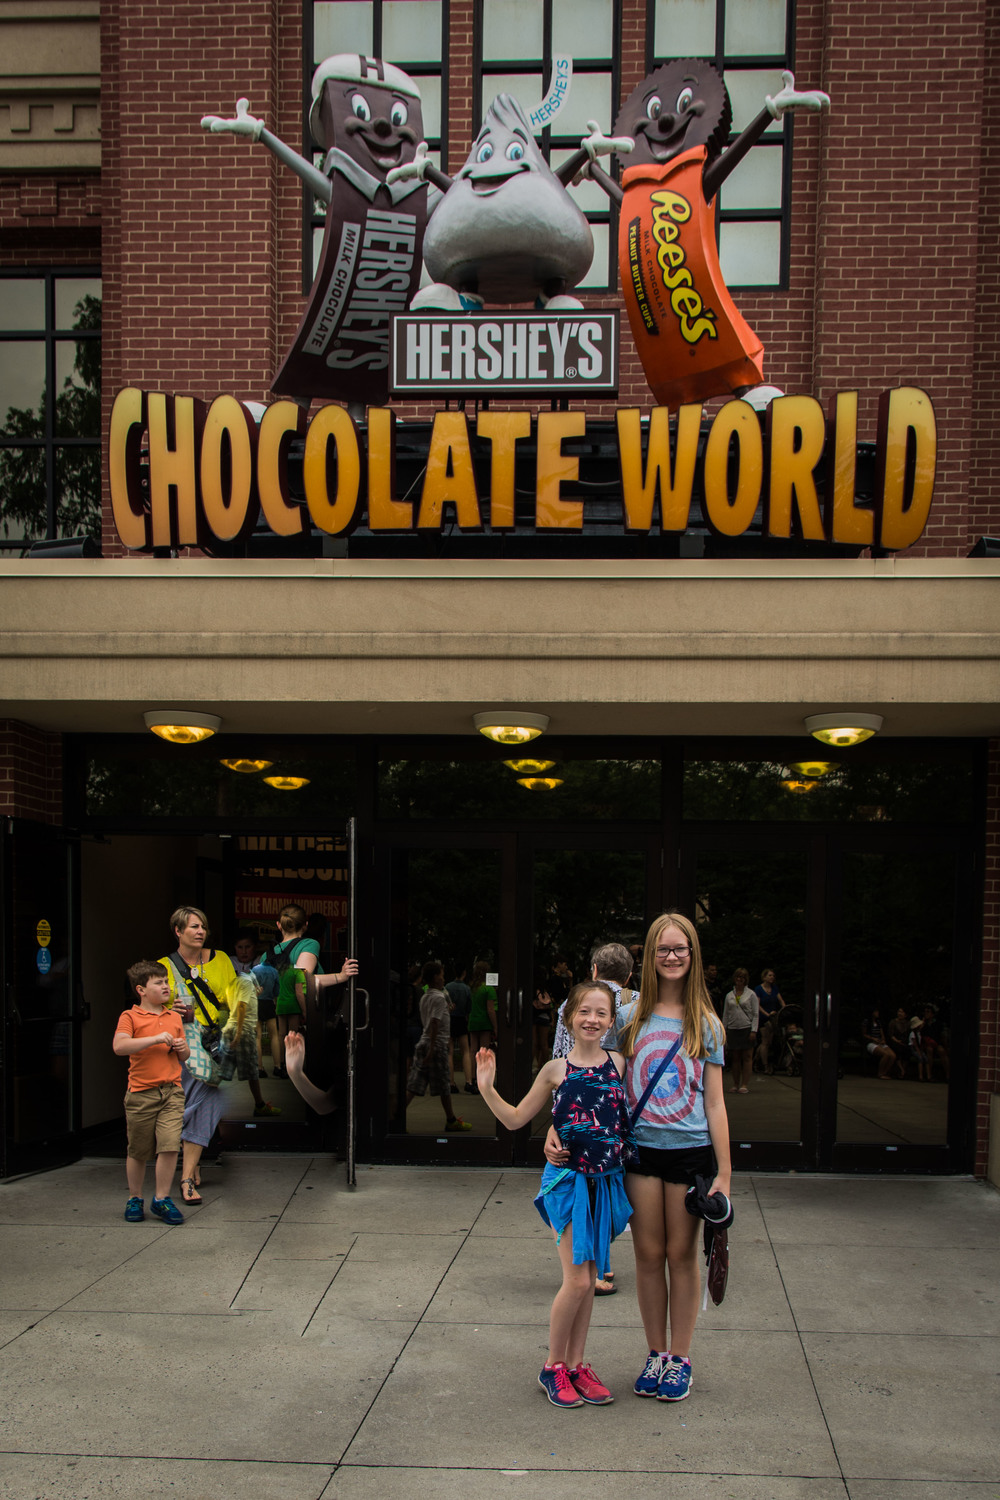 Hershey PA. Ignore the disembodied arm from the photo-bombing kid I tried to Photoshop out.